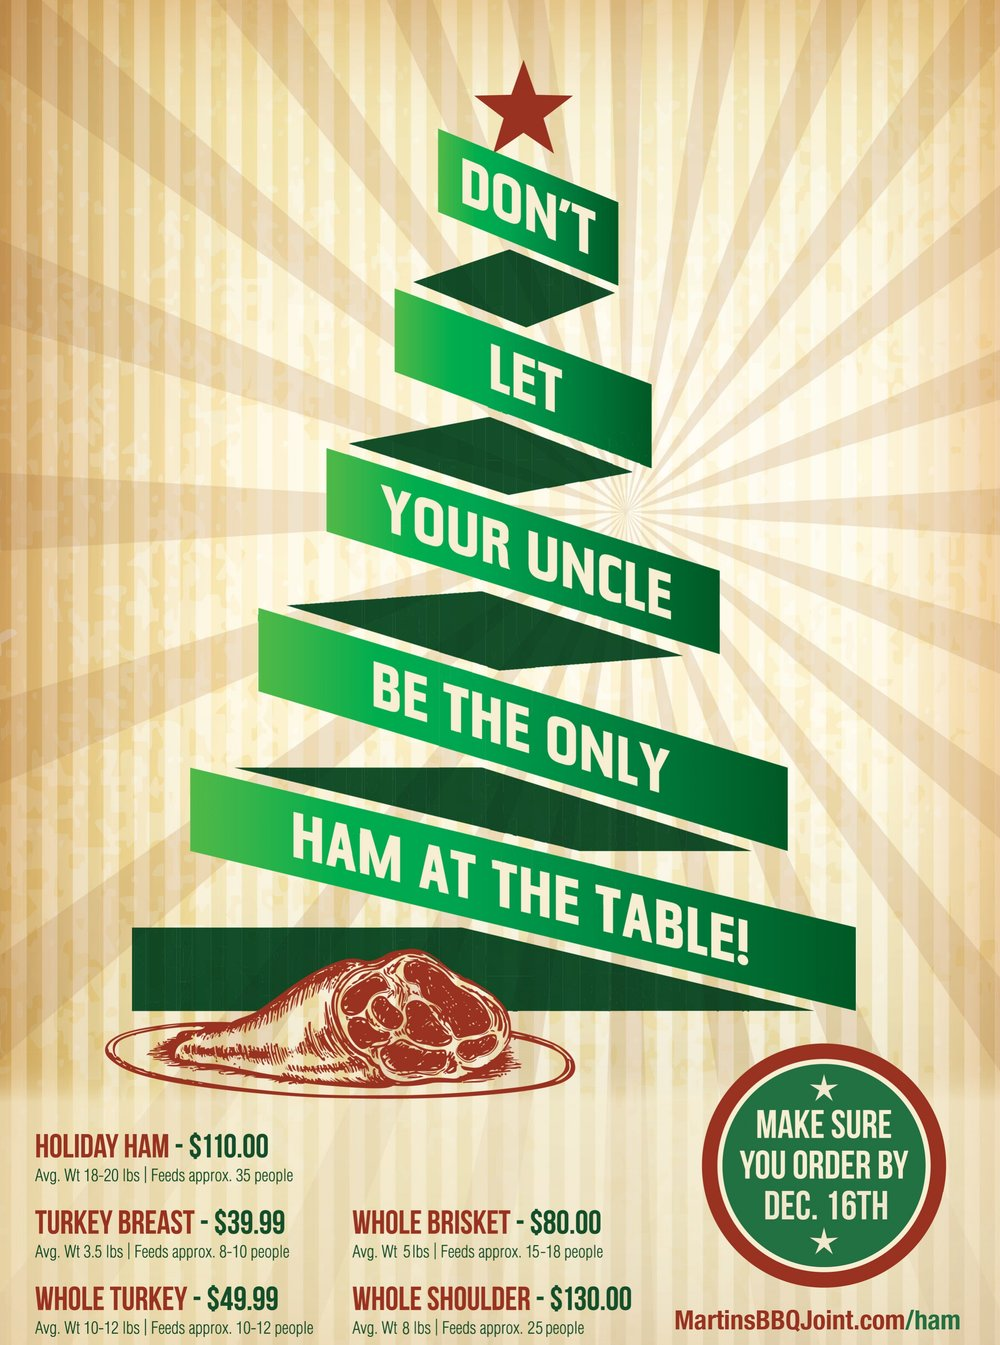 Order your Holiday ham and more from Martin's Bar-B-Que Joint